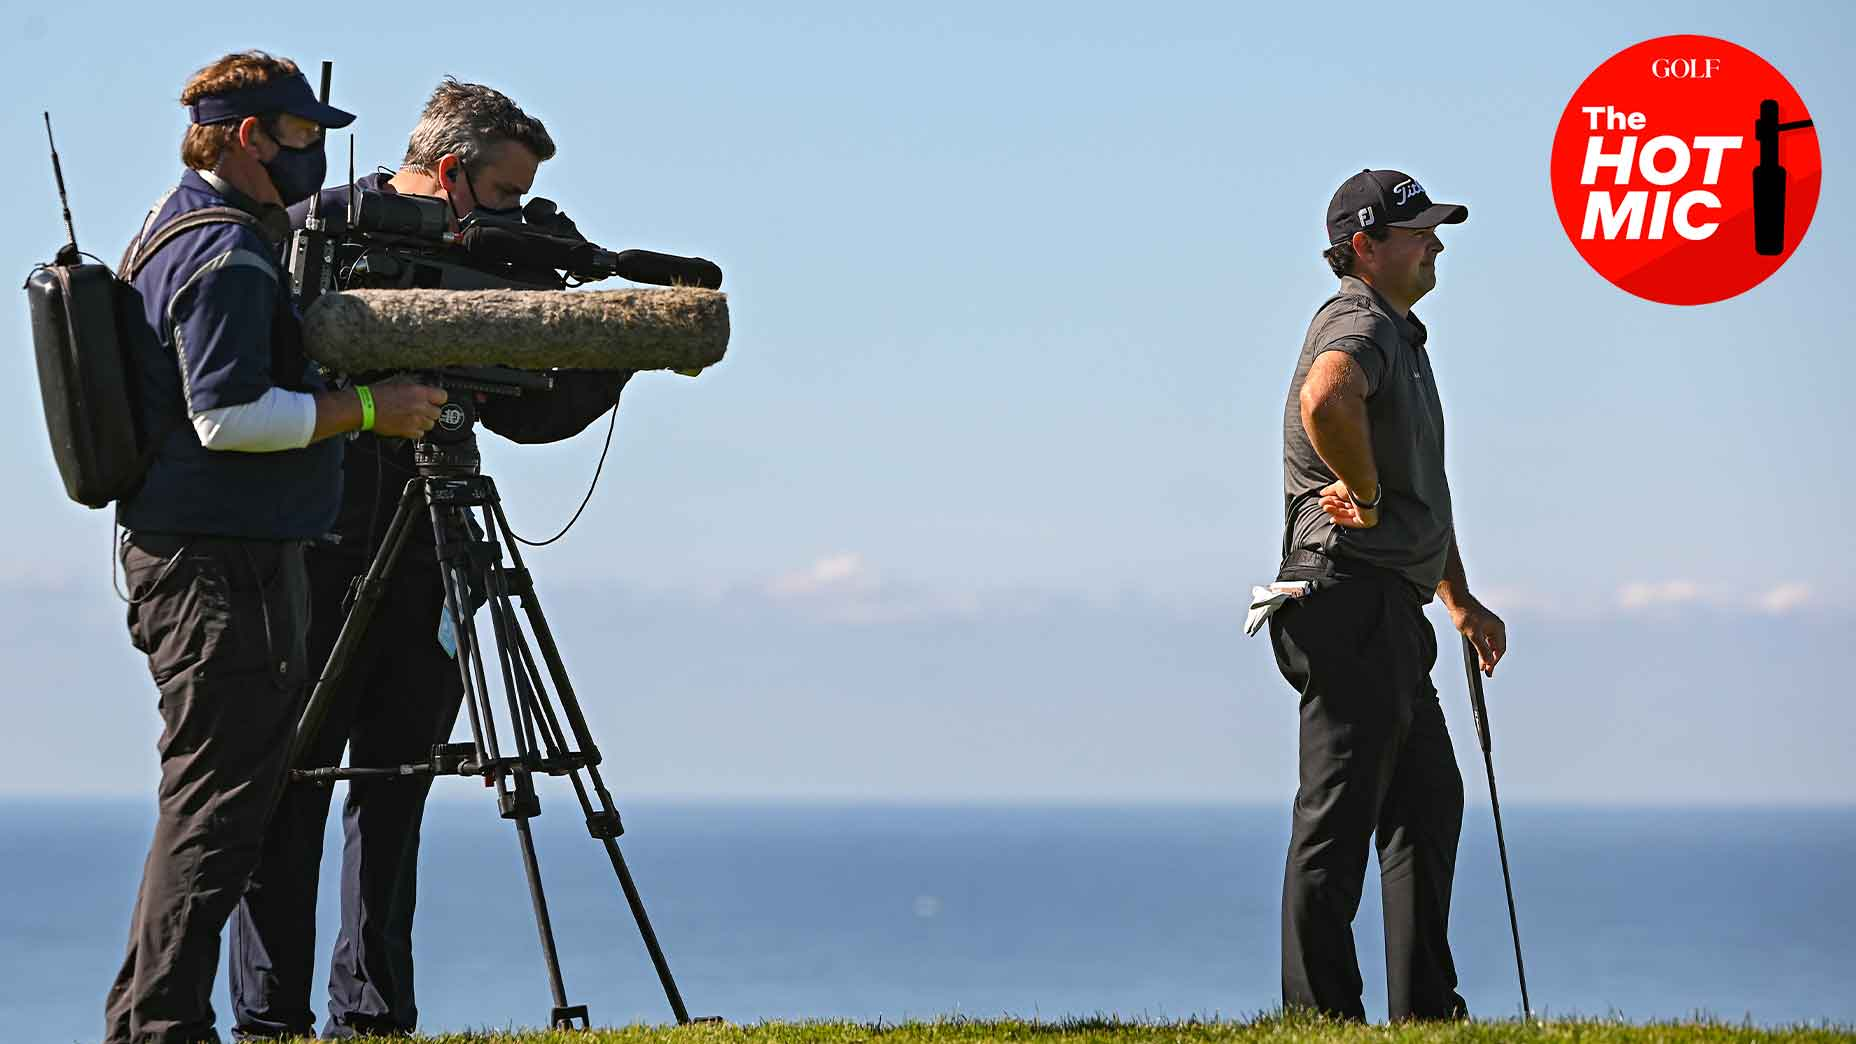 Under new leadership, CBS golf team excelled in covering Patrick Reed controversy